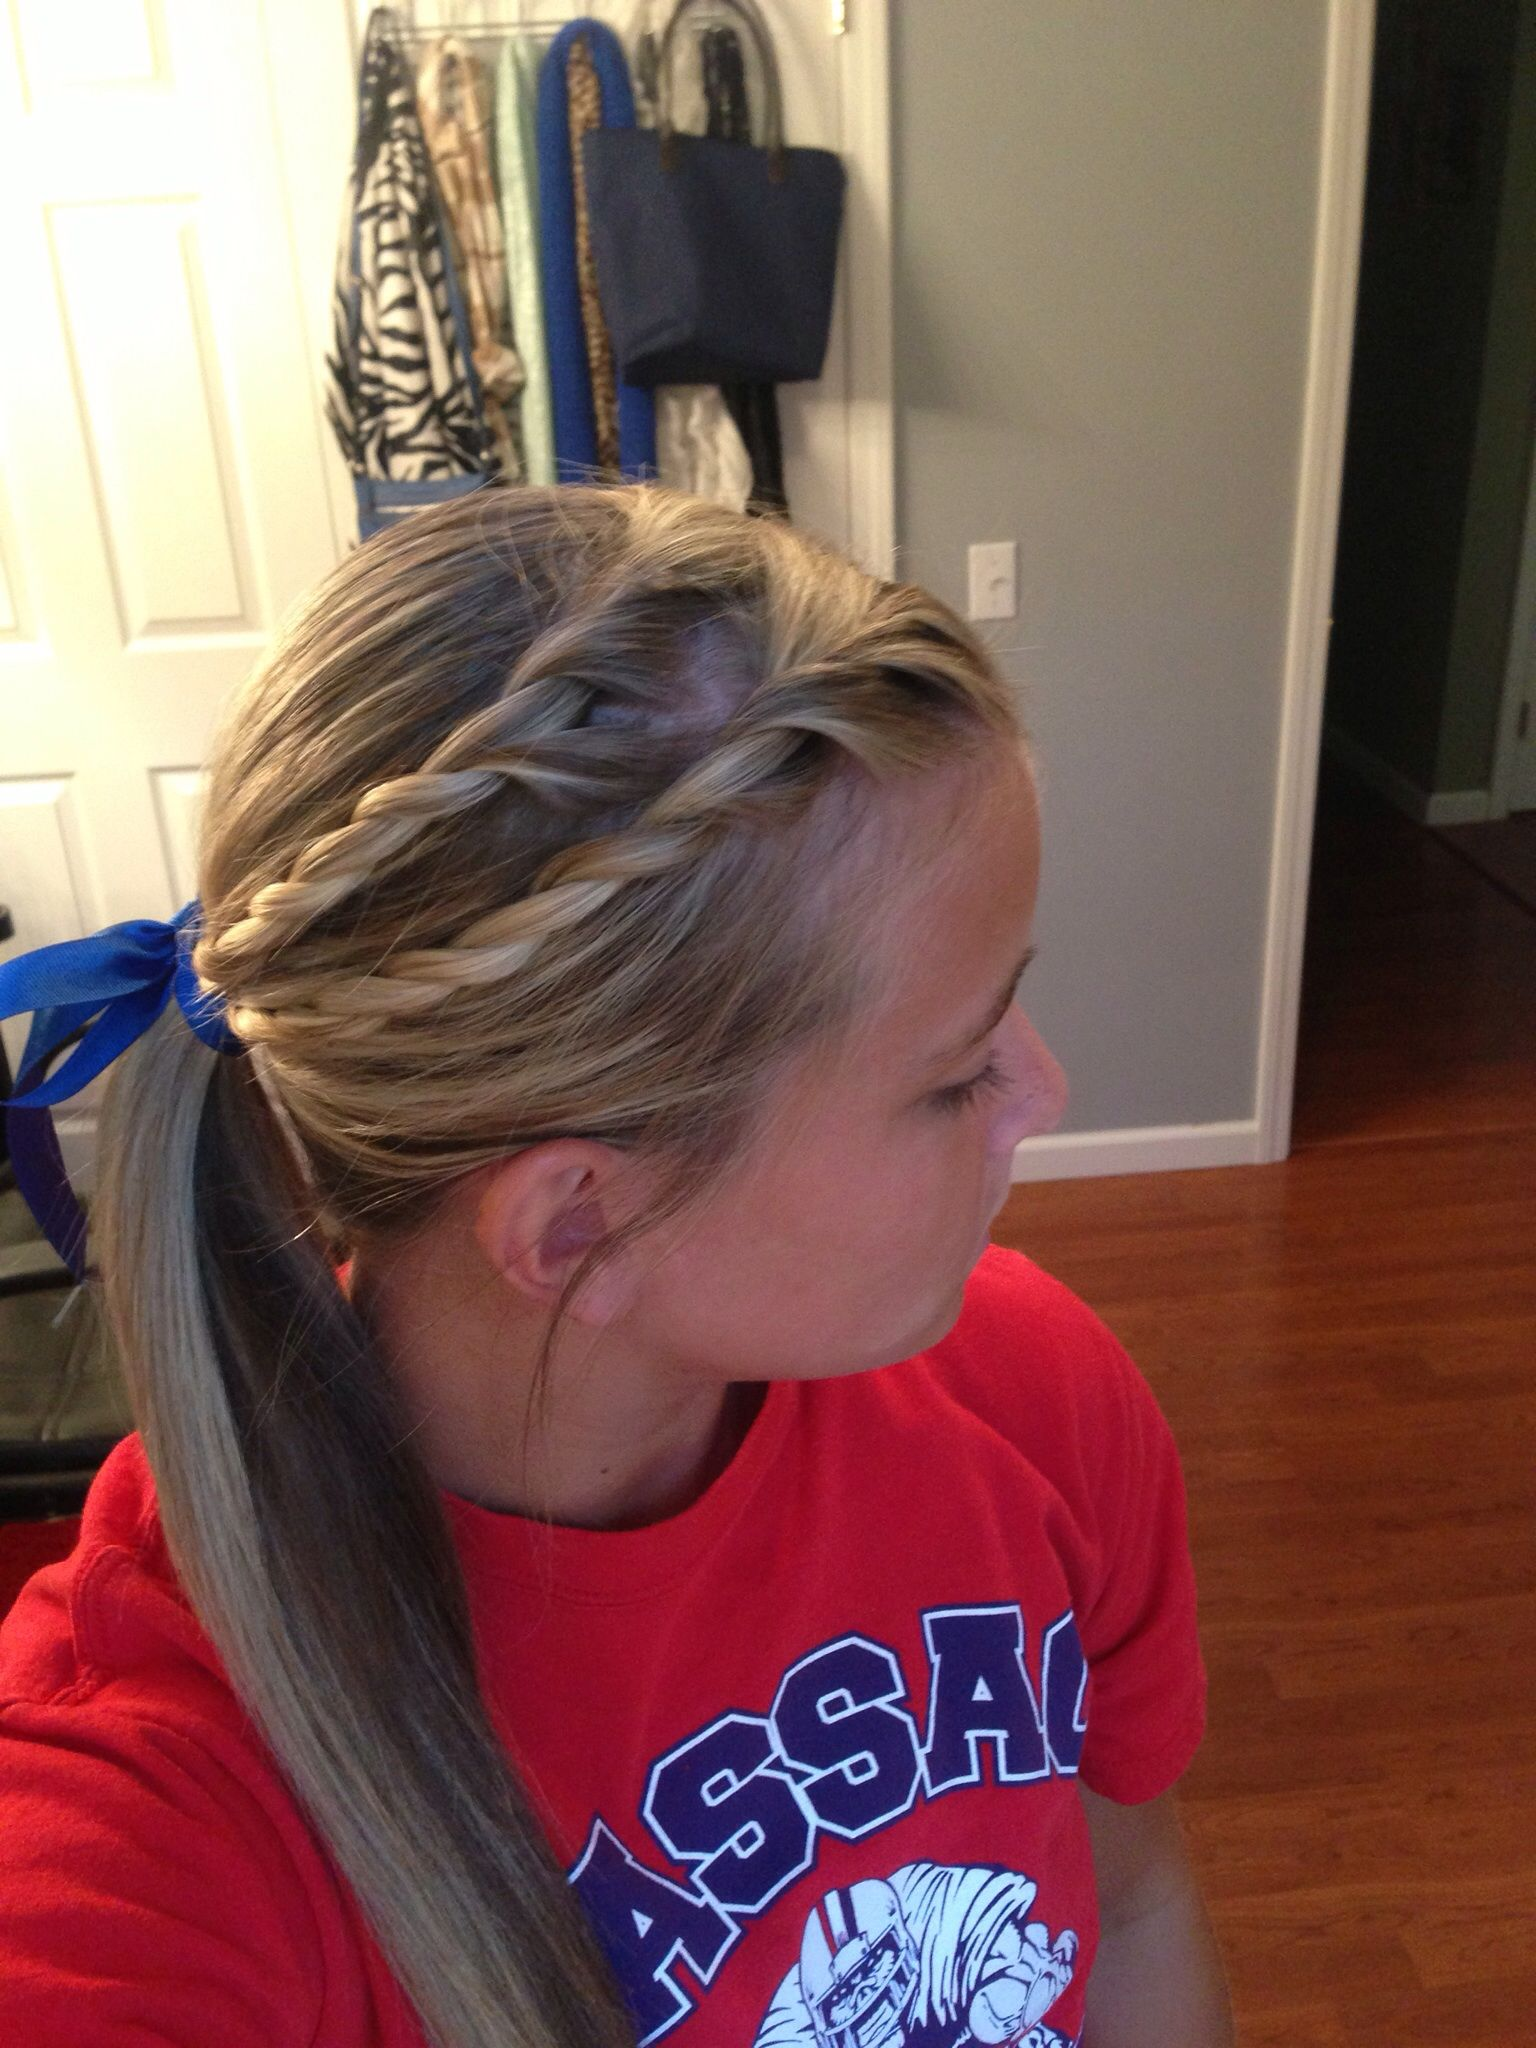 Pin By Samantha Salazar On Makeup And Hair Soccer Hair Sports Hairstyles Sporty Hairstyles